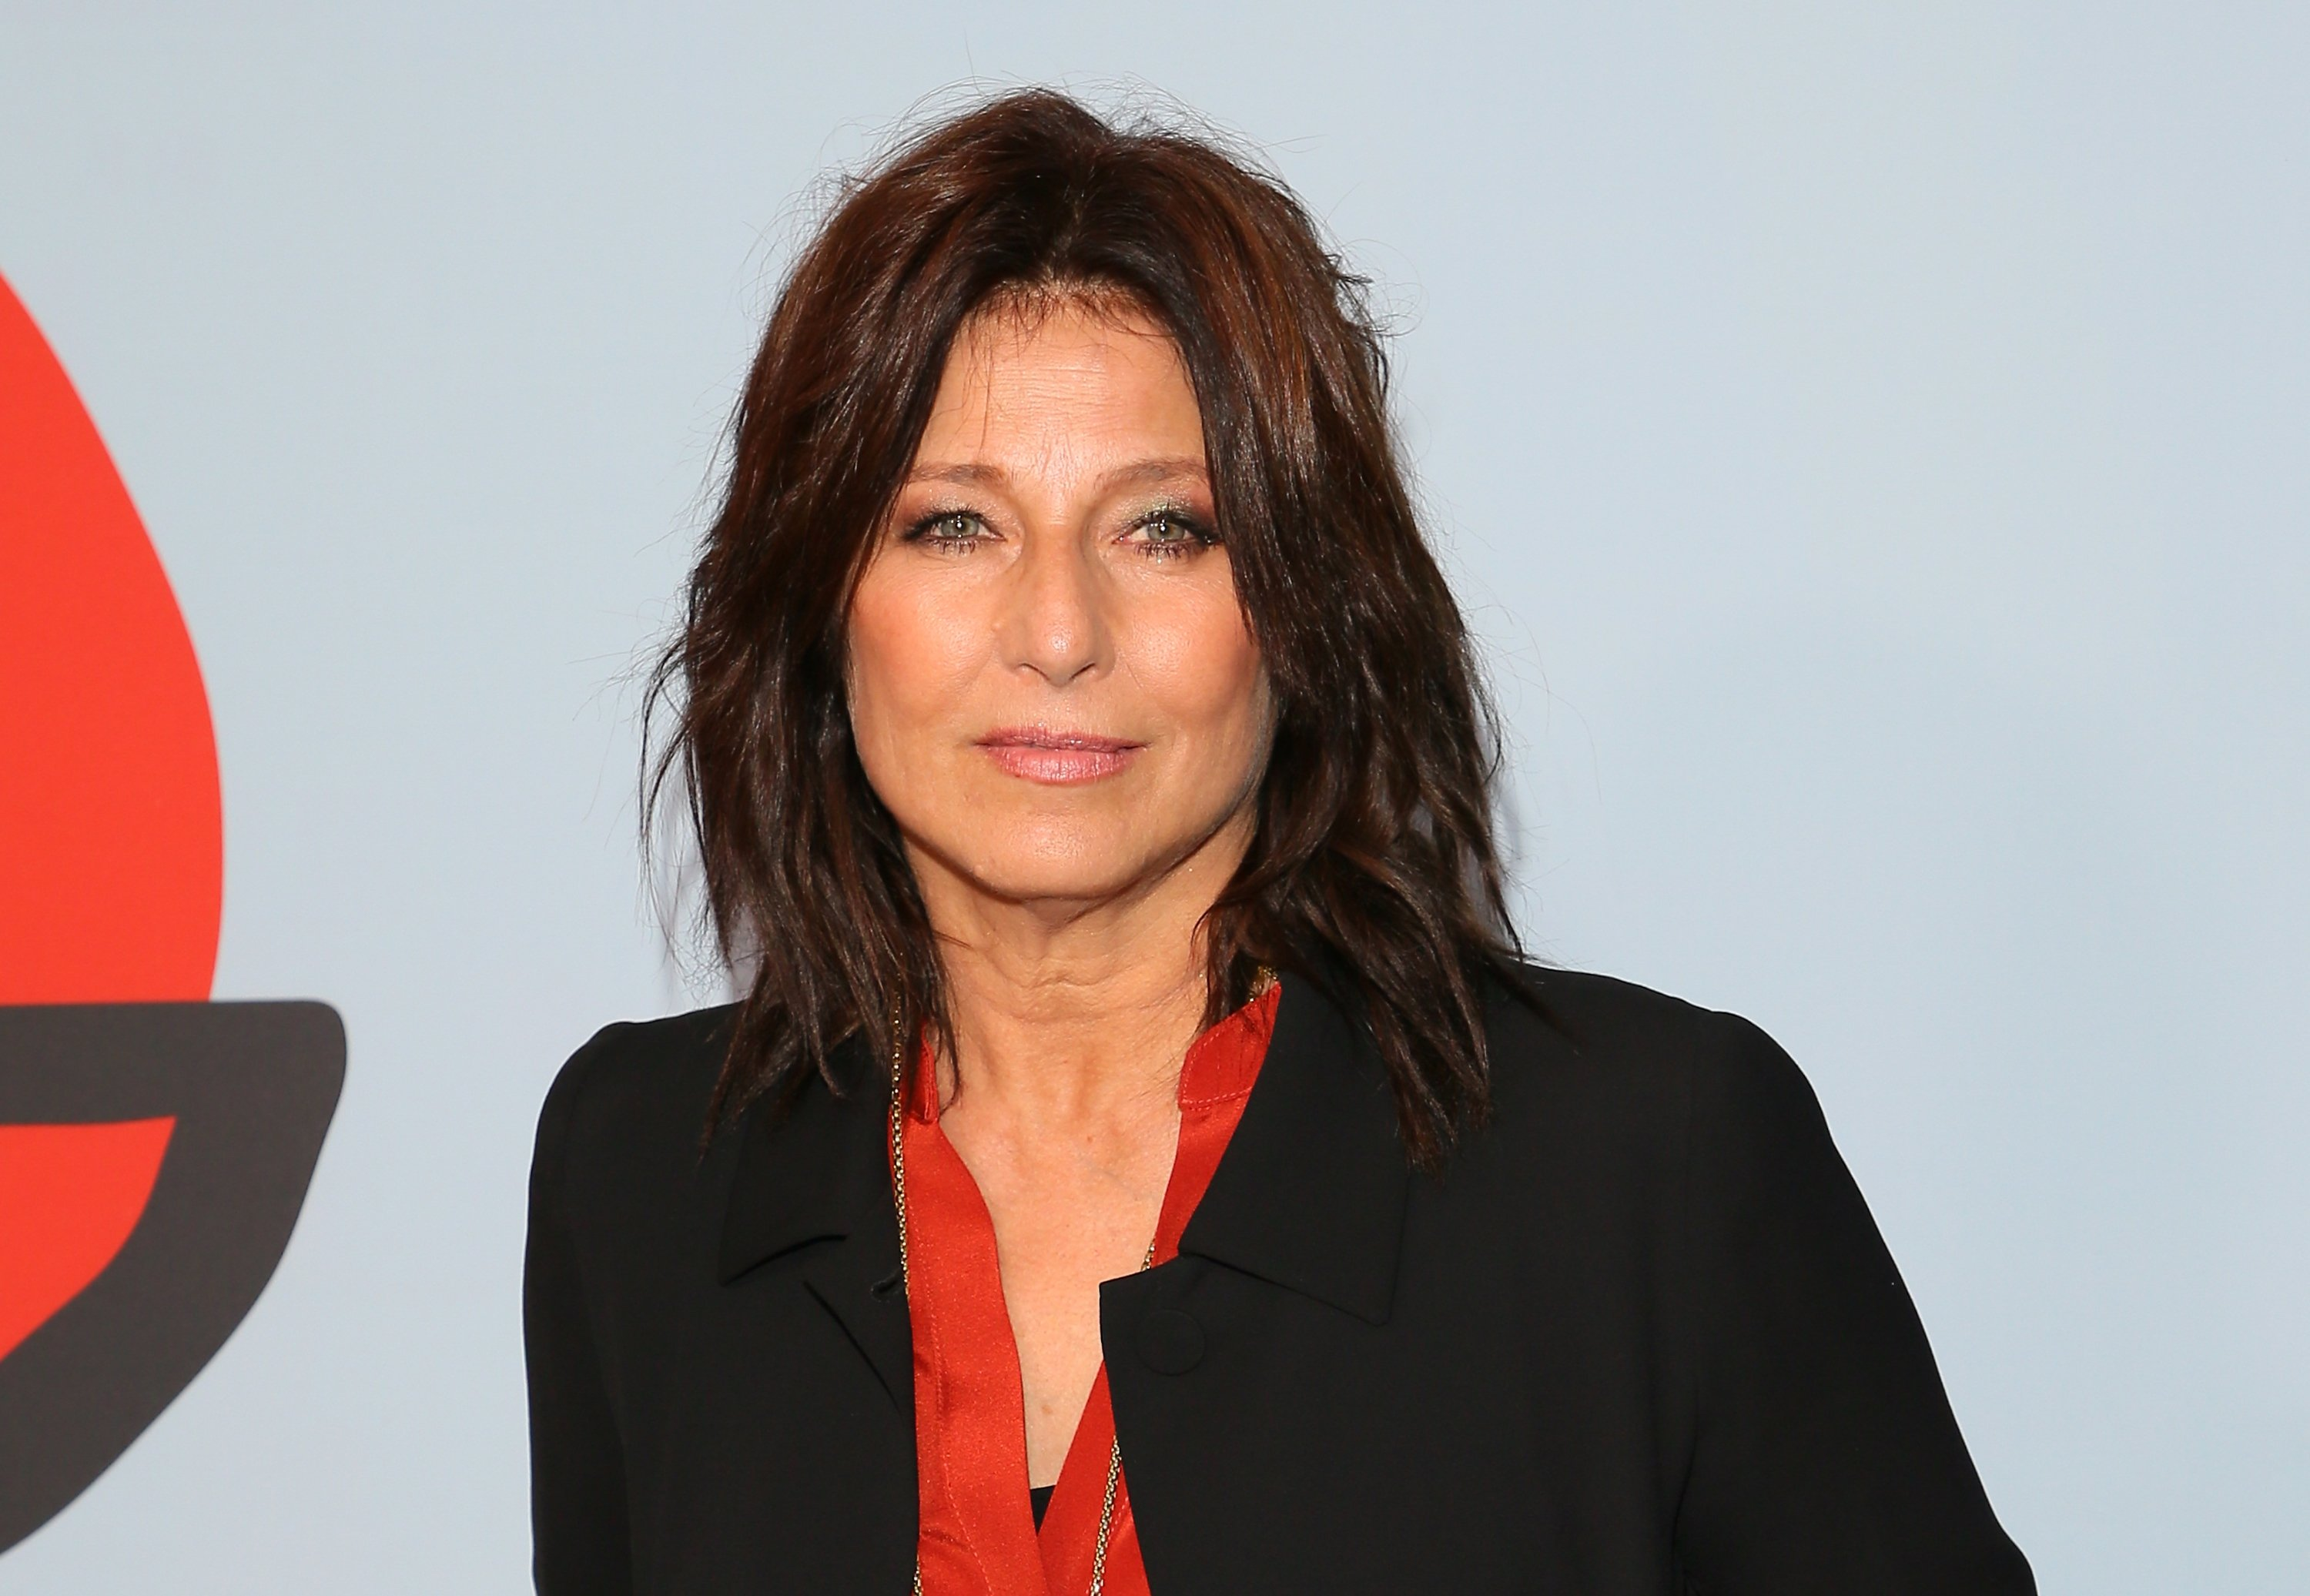 Catherine Keener attends the premiere of Showtime's 'Kidding' at The Cinerama Dome on September 5, 2018 in Los Angeles, California   Photo: Getty Images